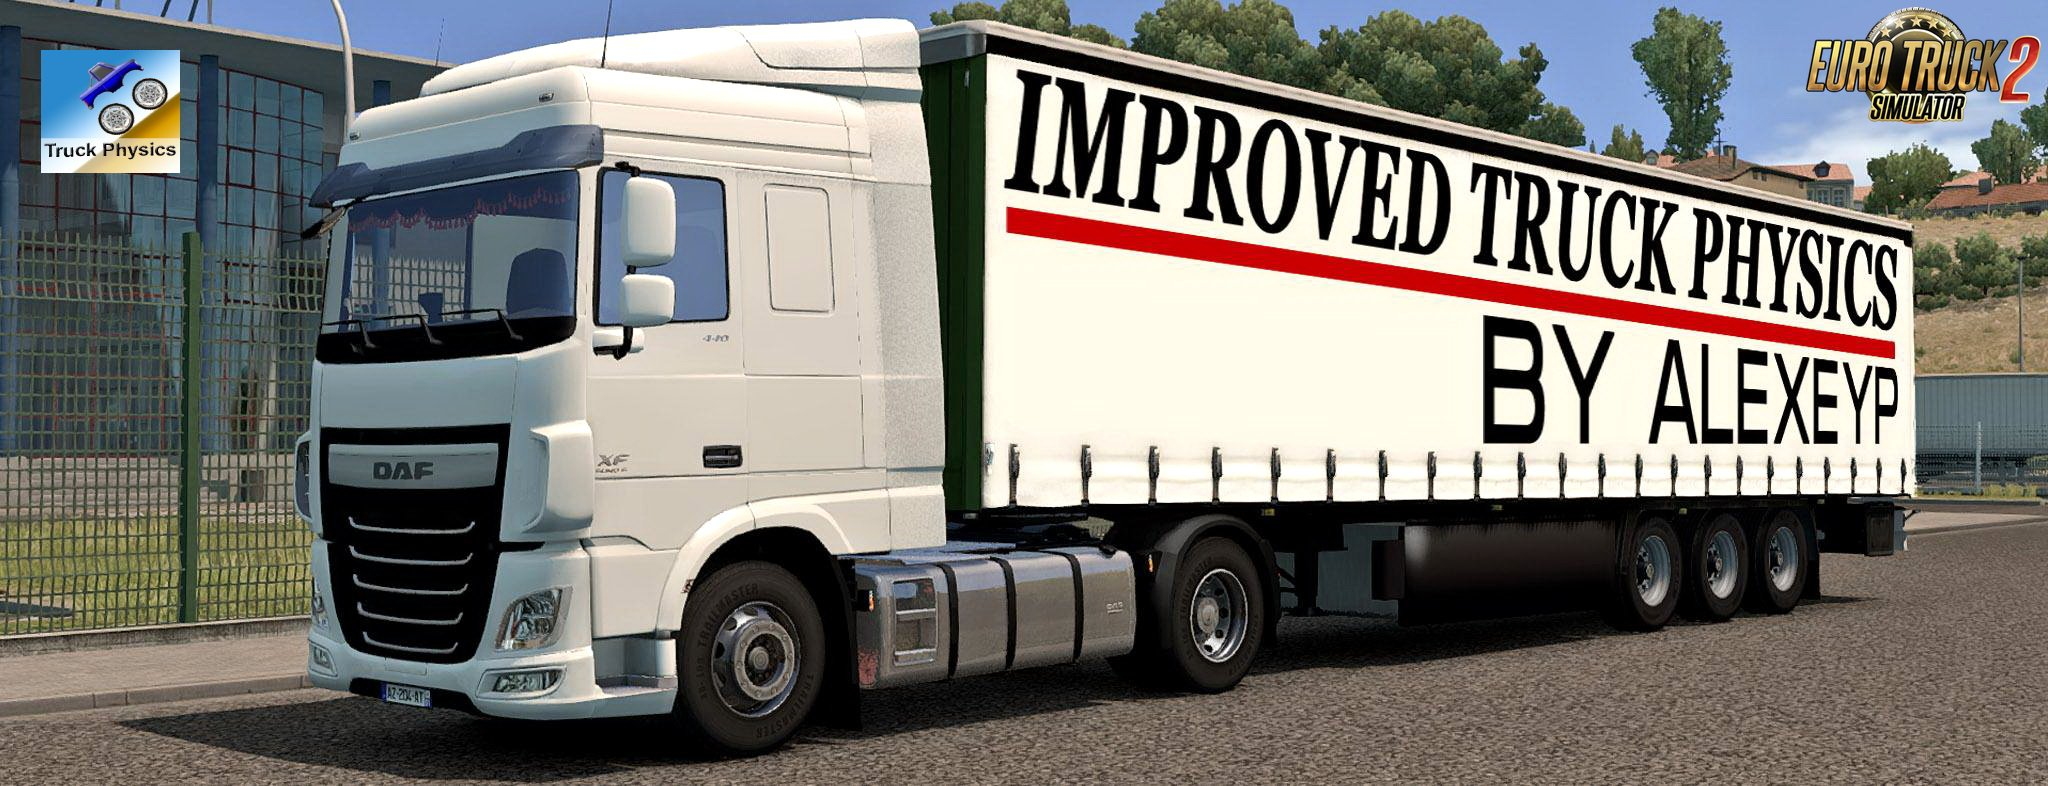 Improved truck physics v2.7 by AlexeyP (1.32.x)